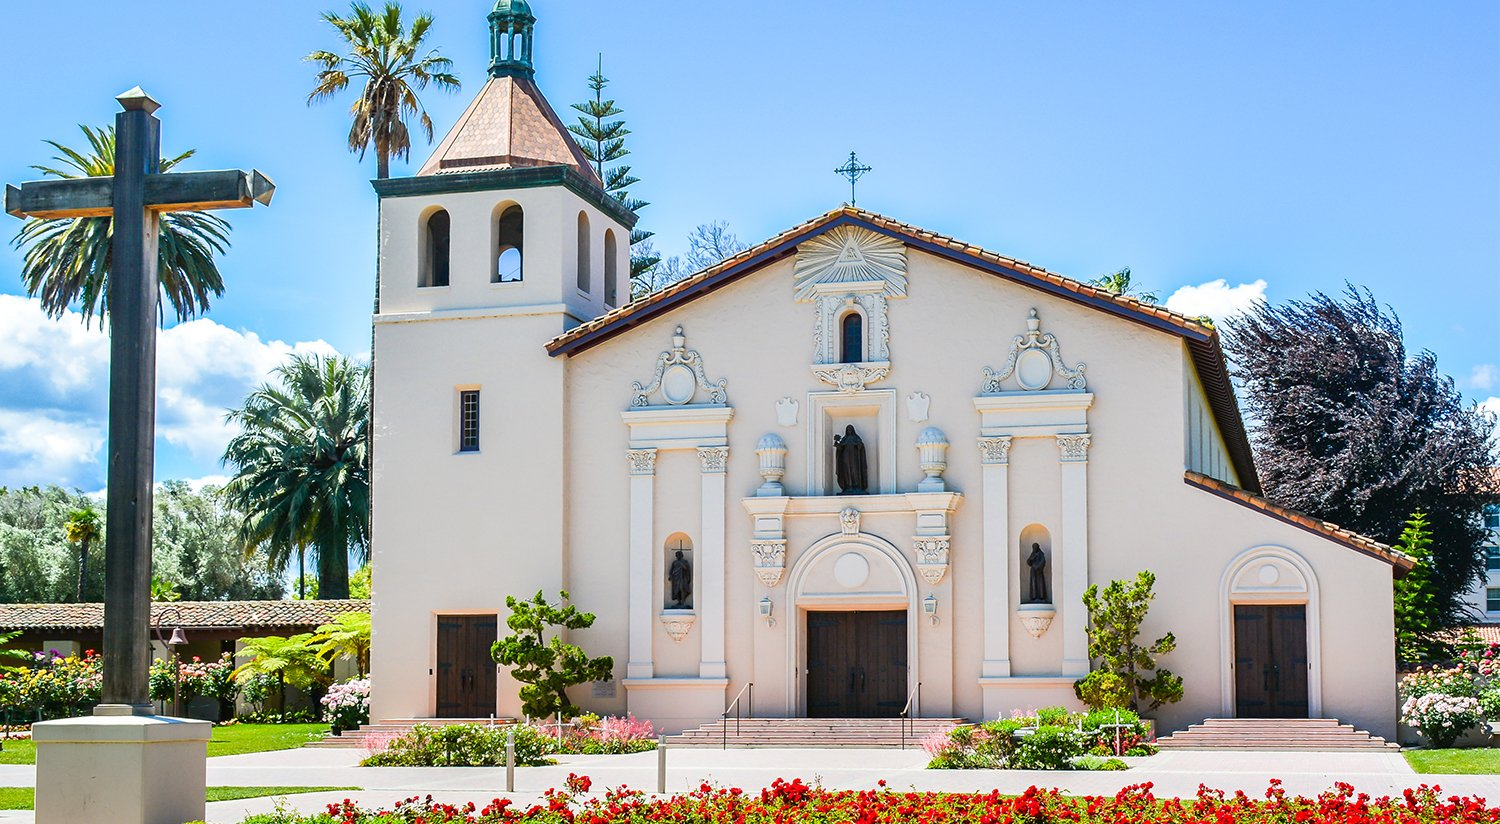 OUR HOTEL PROVIDES EASY ACCESS TO MISSION SANTA CLARA de Asis & SANTA CLARA UNIVERSITY